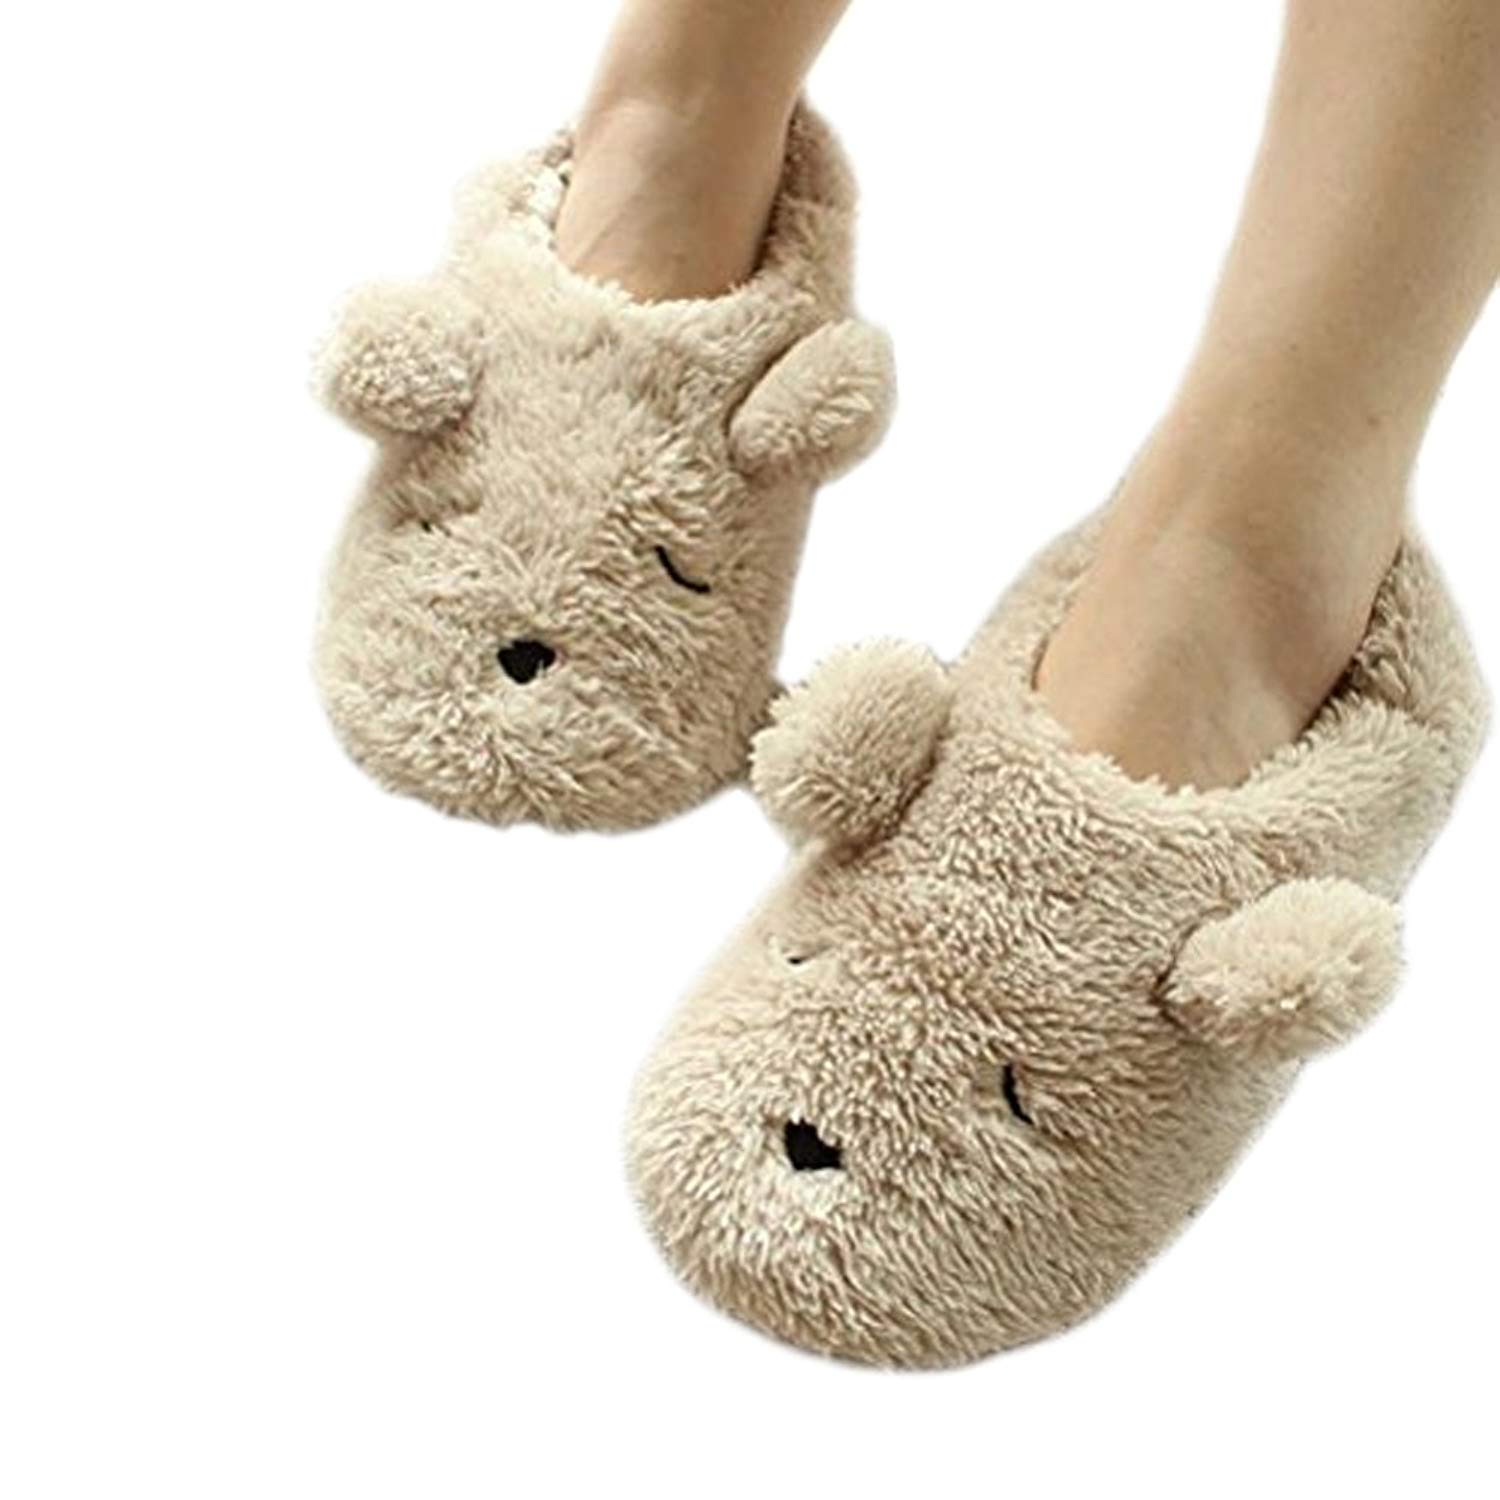 816fa5bb162 Get Quotations · Fakeface Winter Warm Fleece Slippers